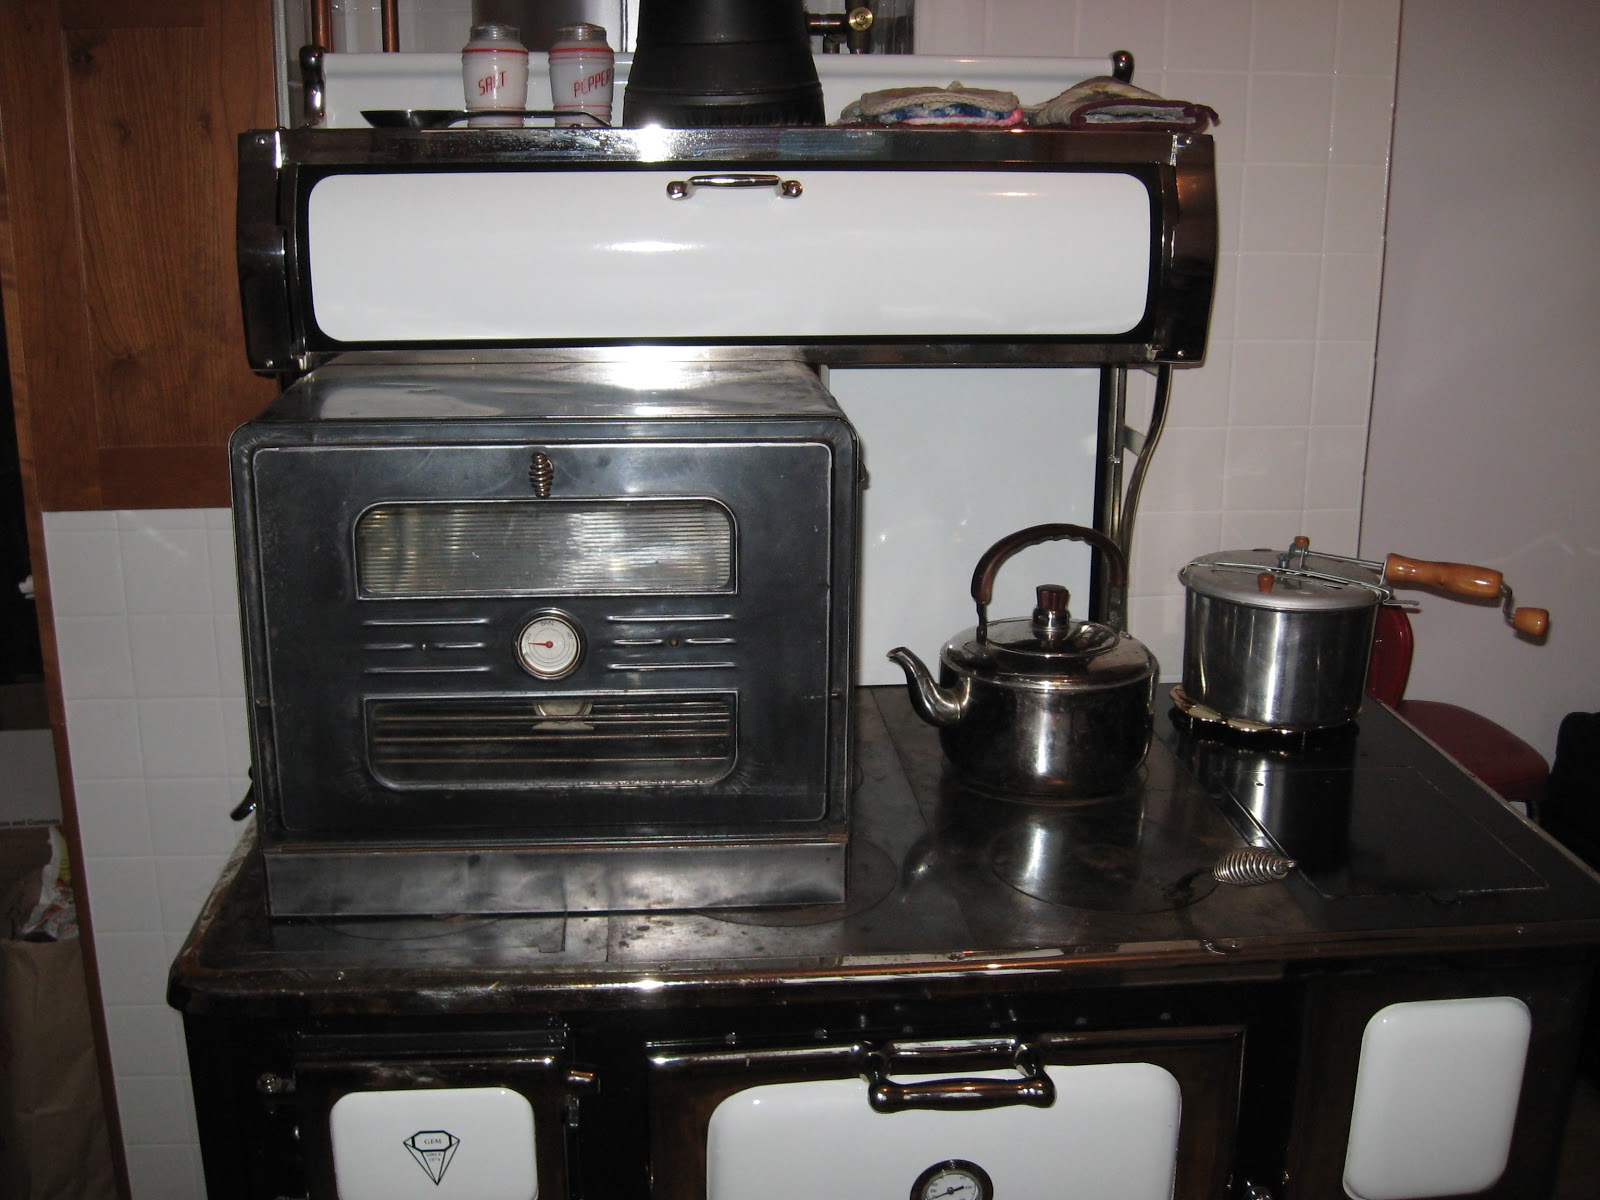 Kitchen Cook Stoves Home Depot Remodel Cost Wood Cookstove Cooking Using A Stovetop Oven On